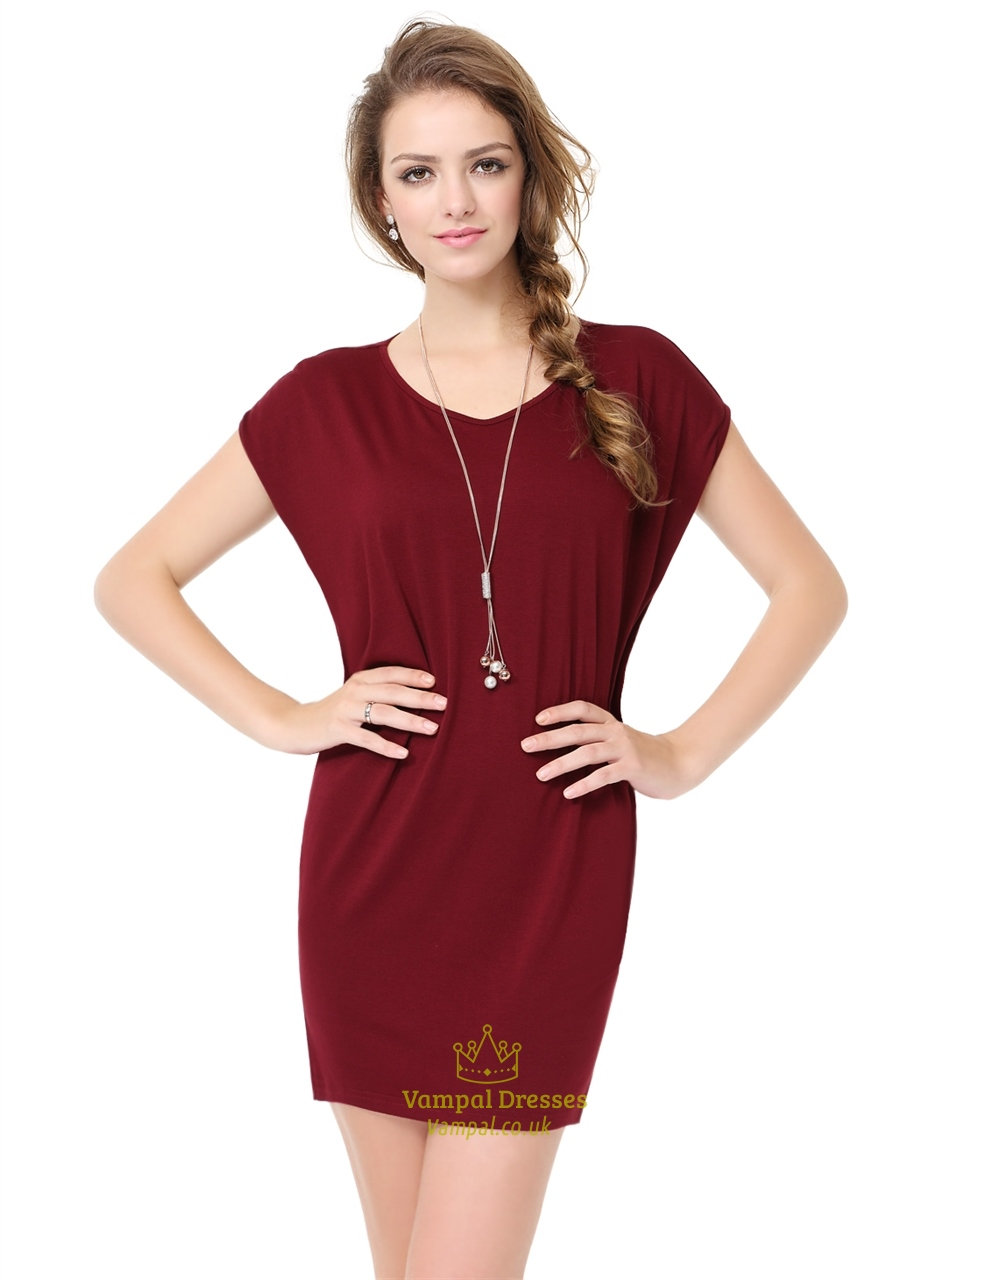 Womens burgundy short sleeve scoop neck t shirt dress uk Women s long sleeve shirt dress